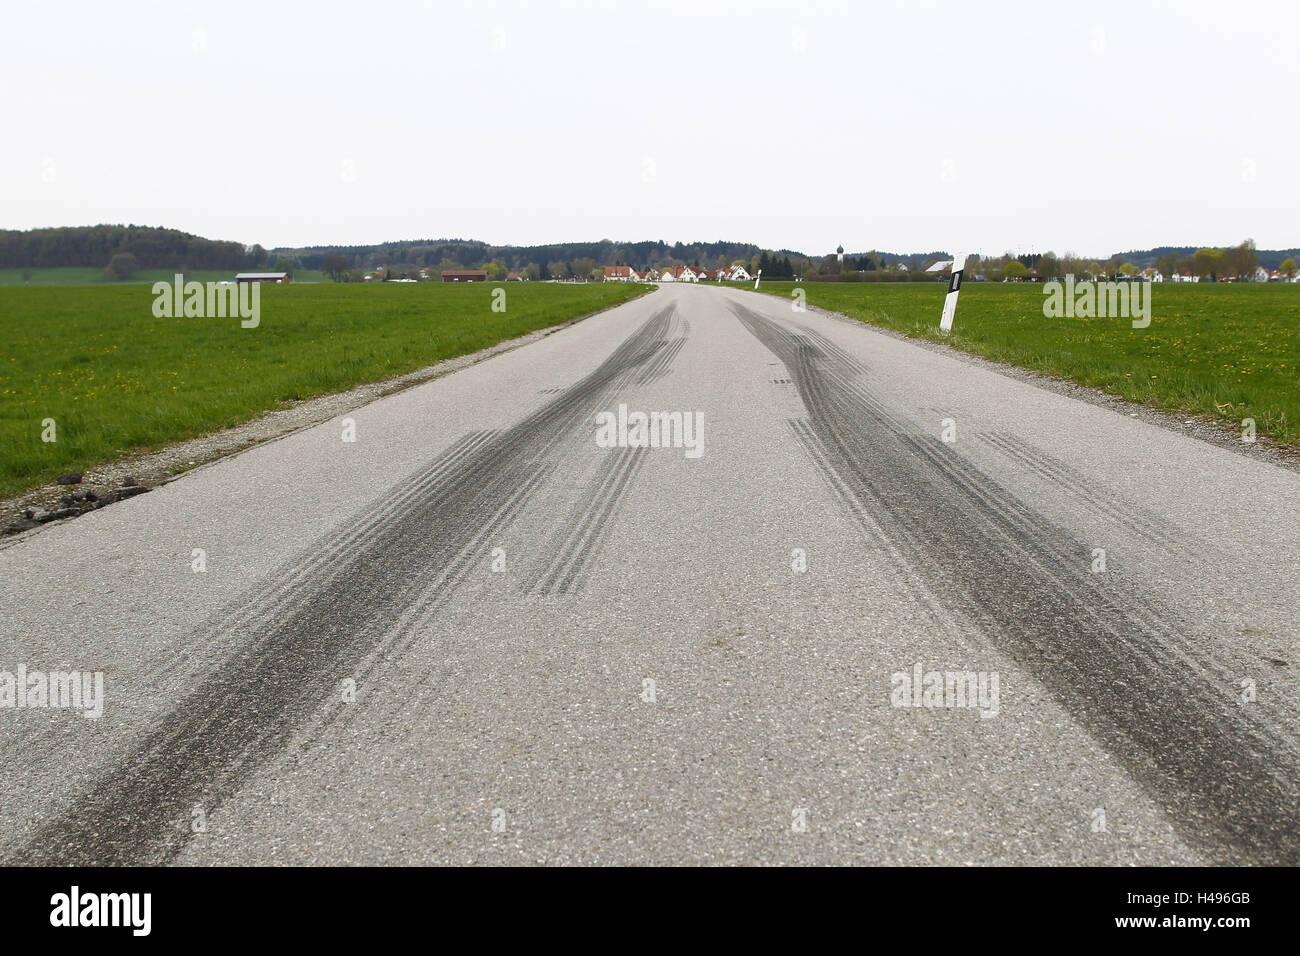 Acceleration lanes of a passenger car on country road, - Stock Image